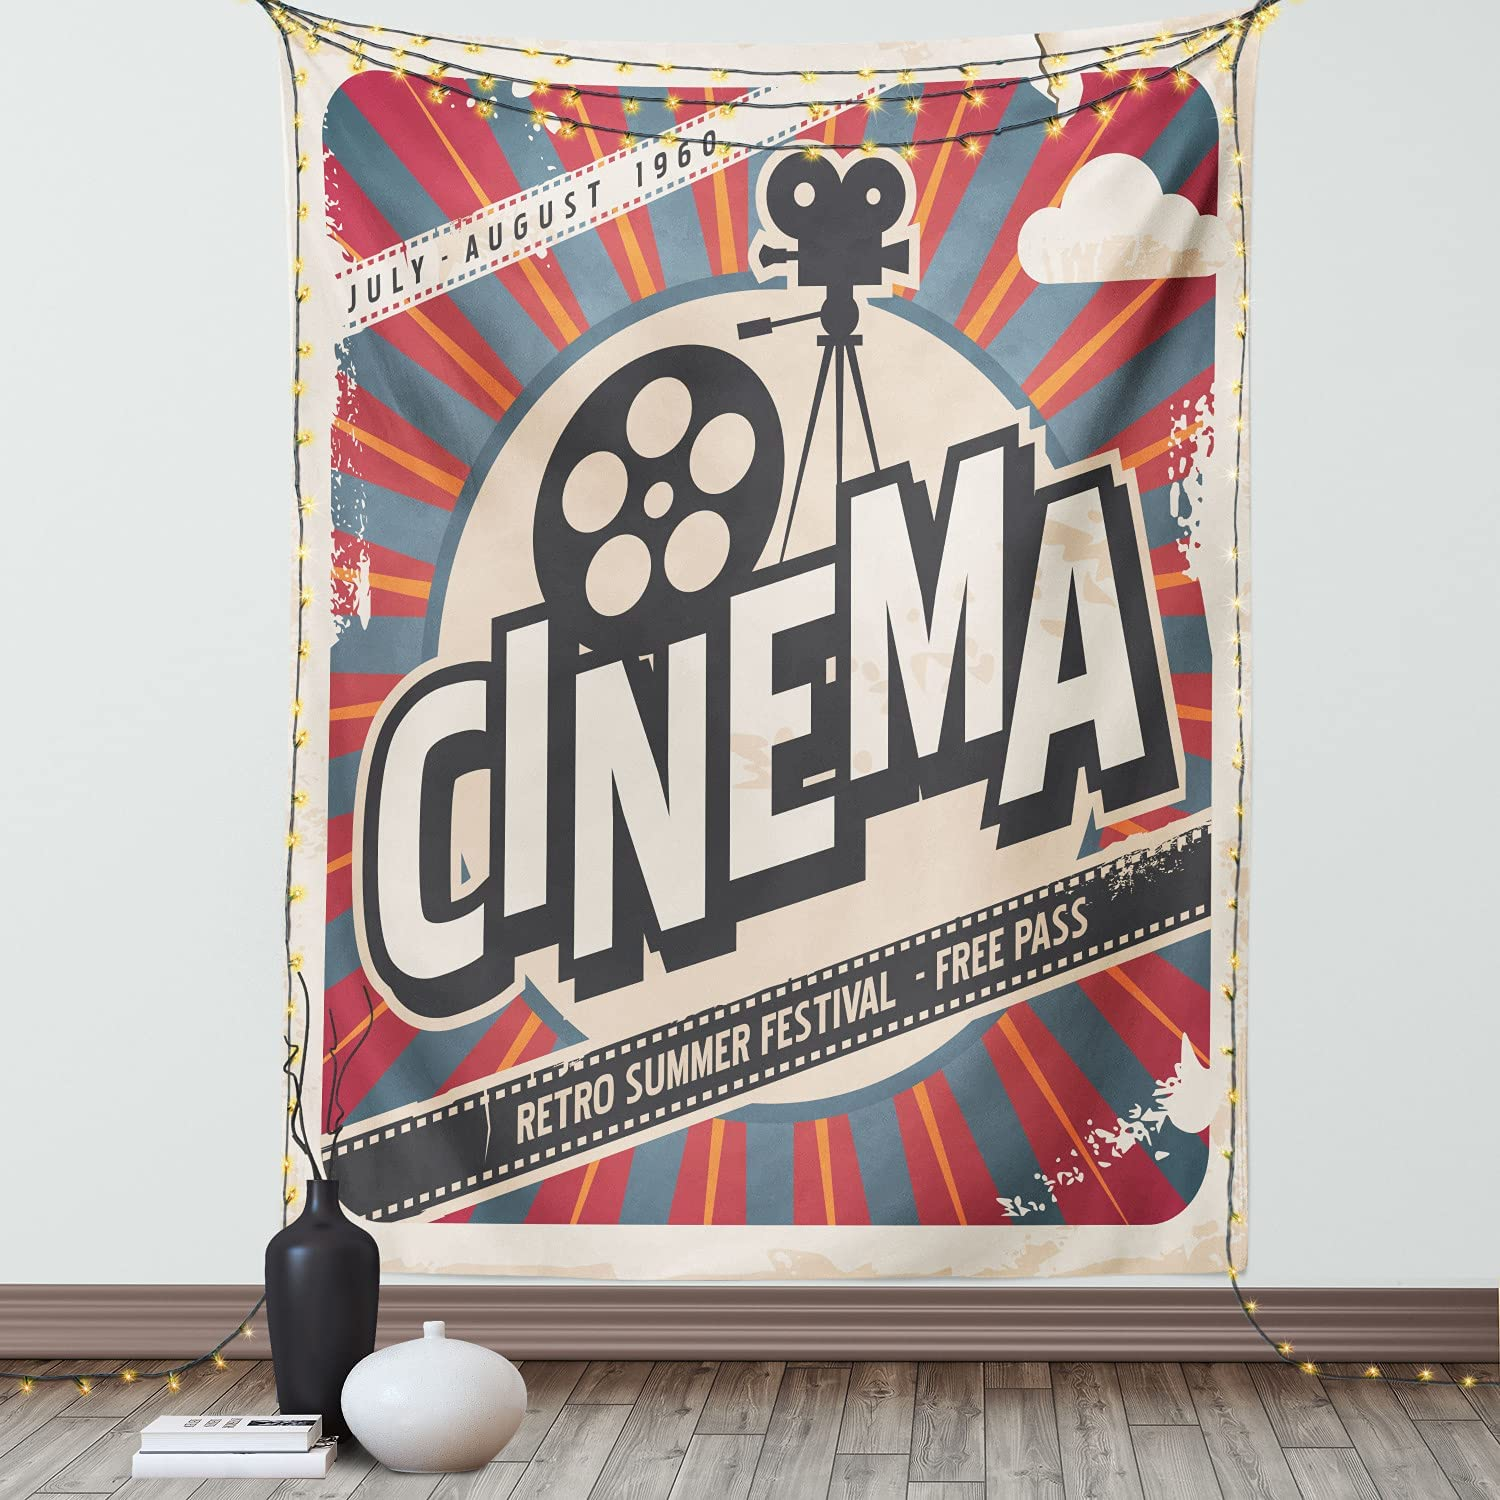 Ambesonne Vintage Tapestry, Retro Cinema Movie Vintage Paper Texture Hollywood Stars Theme Image Print, Wall Hanging for Bedroom Living Room Dorm Decor, 40